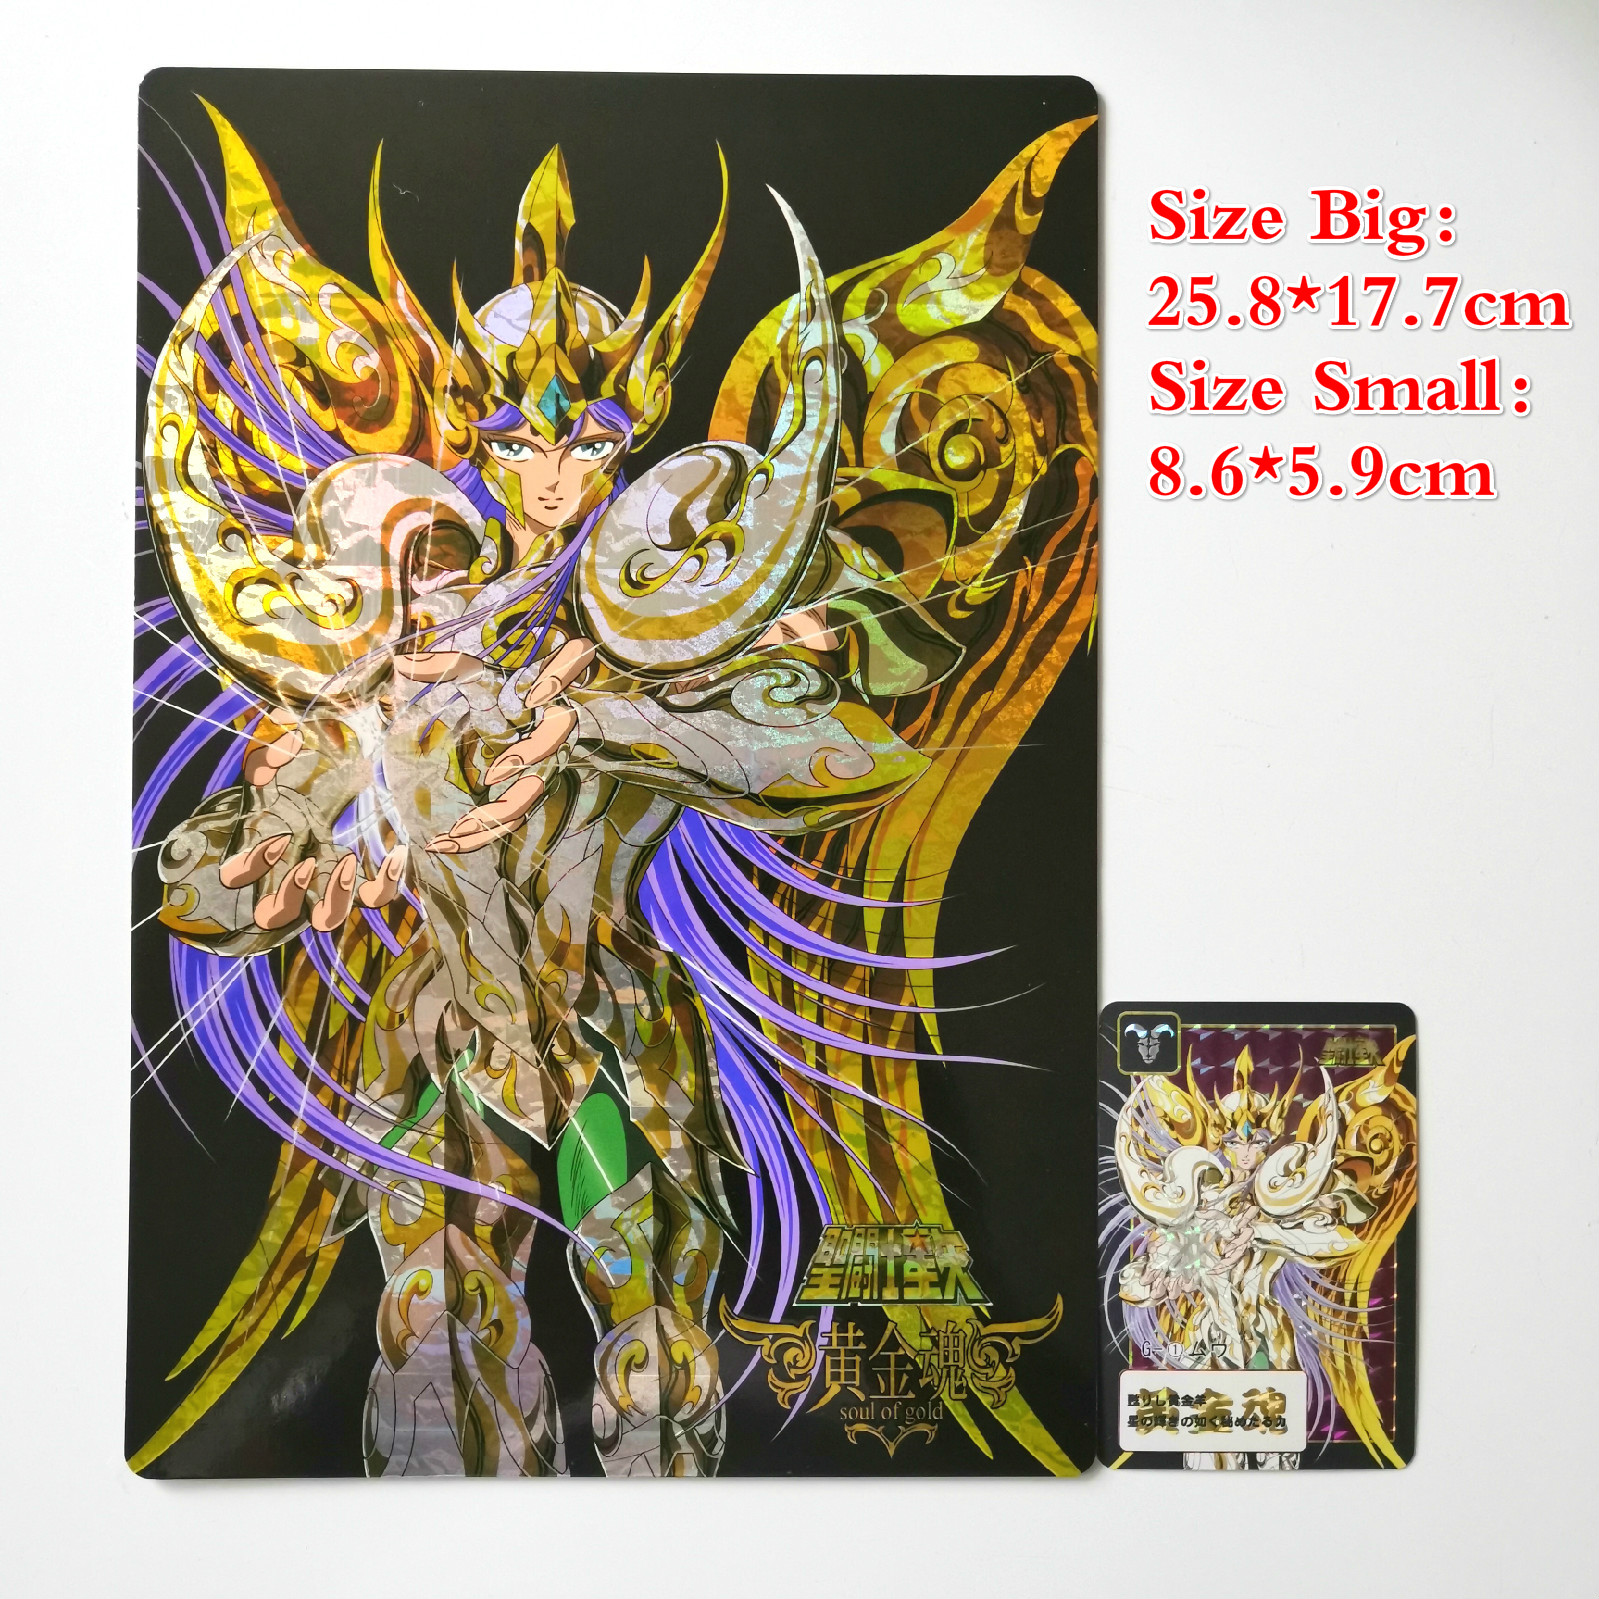 12pcs/set Saint Seiya 25.8*17.7cm Toys Hobbies Hobby Collectibles Game Collection Anime Cards